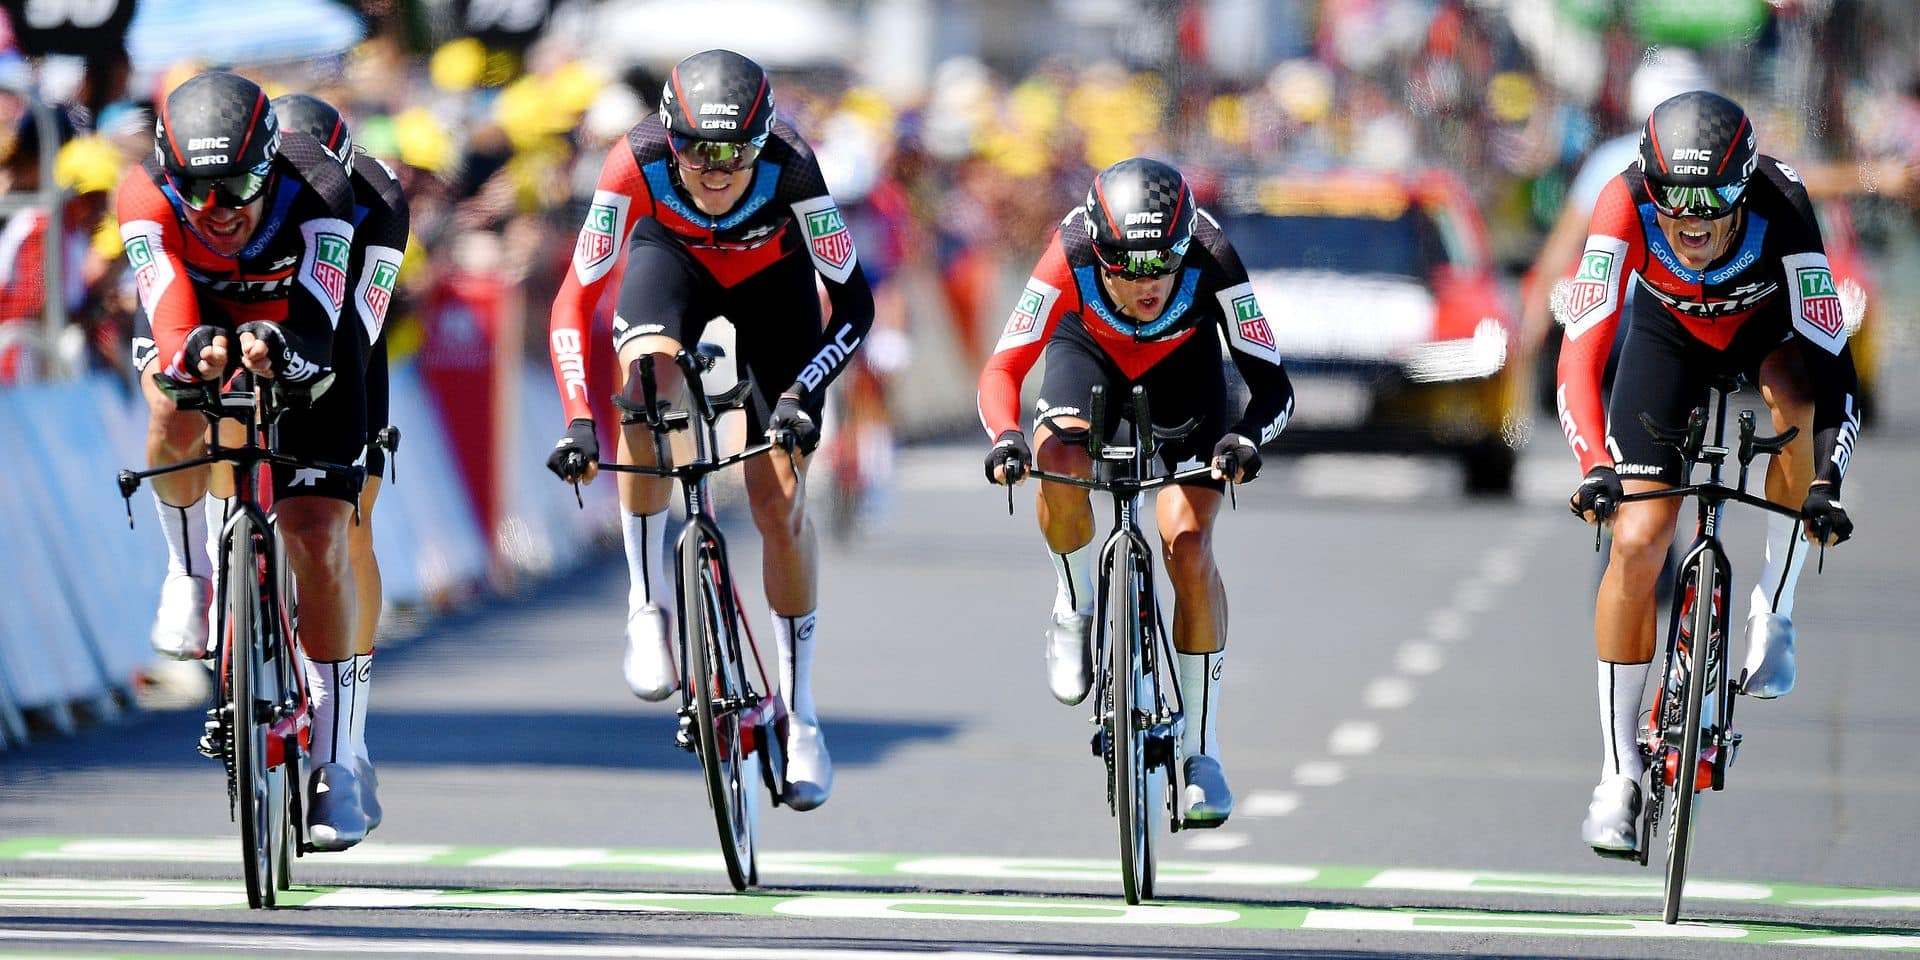 BMC Racing Team riders with 87 Belgian Greg Van Avermaet of BMC Racing crosses the finish line to win the third stage of the 105th edition of the Tour de France cycling race, a team time trial (35,5km) from Cholet to Cholet, France, Monday 09 July 2018. This year's Tour de France takes place from July 7th to July 29th. BELGA PHOTO DAVID STOCKMAN